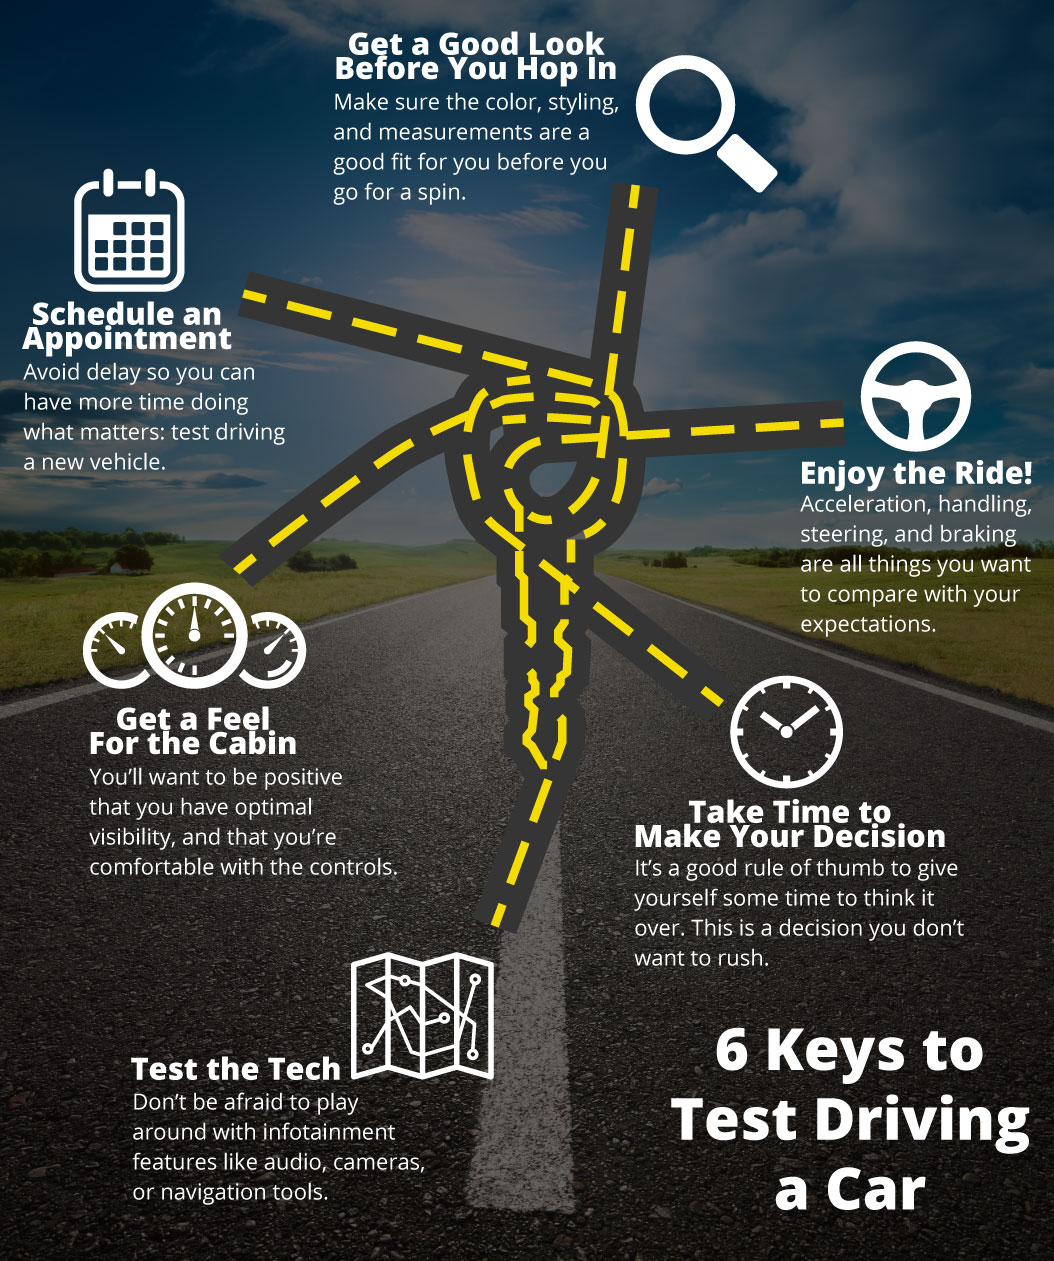 A custom infographic with six tips for test driving a car